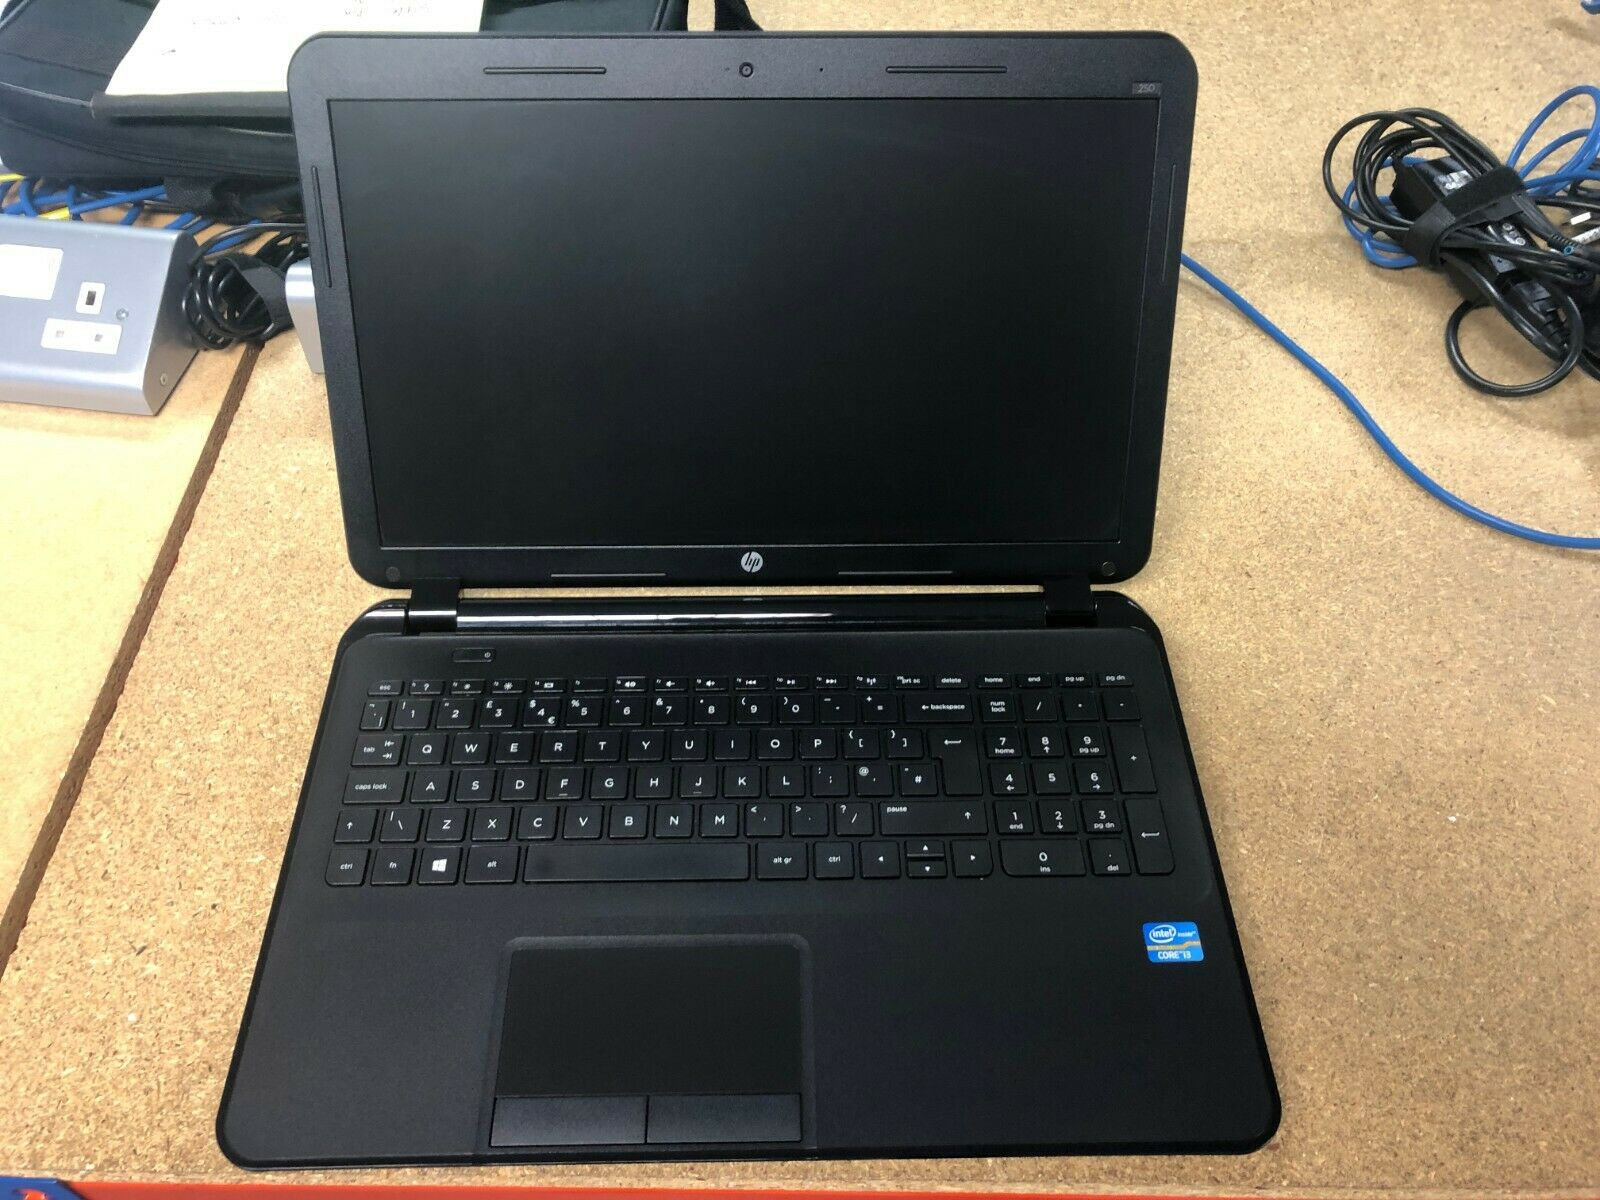 Laptop Windows - HP 250 Laptop i3 2.4Ghz 4GB RAM Windows 10